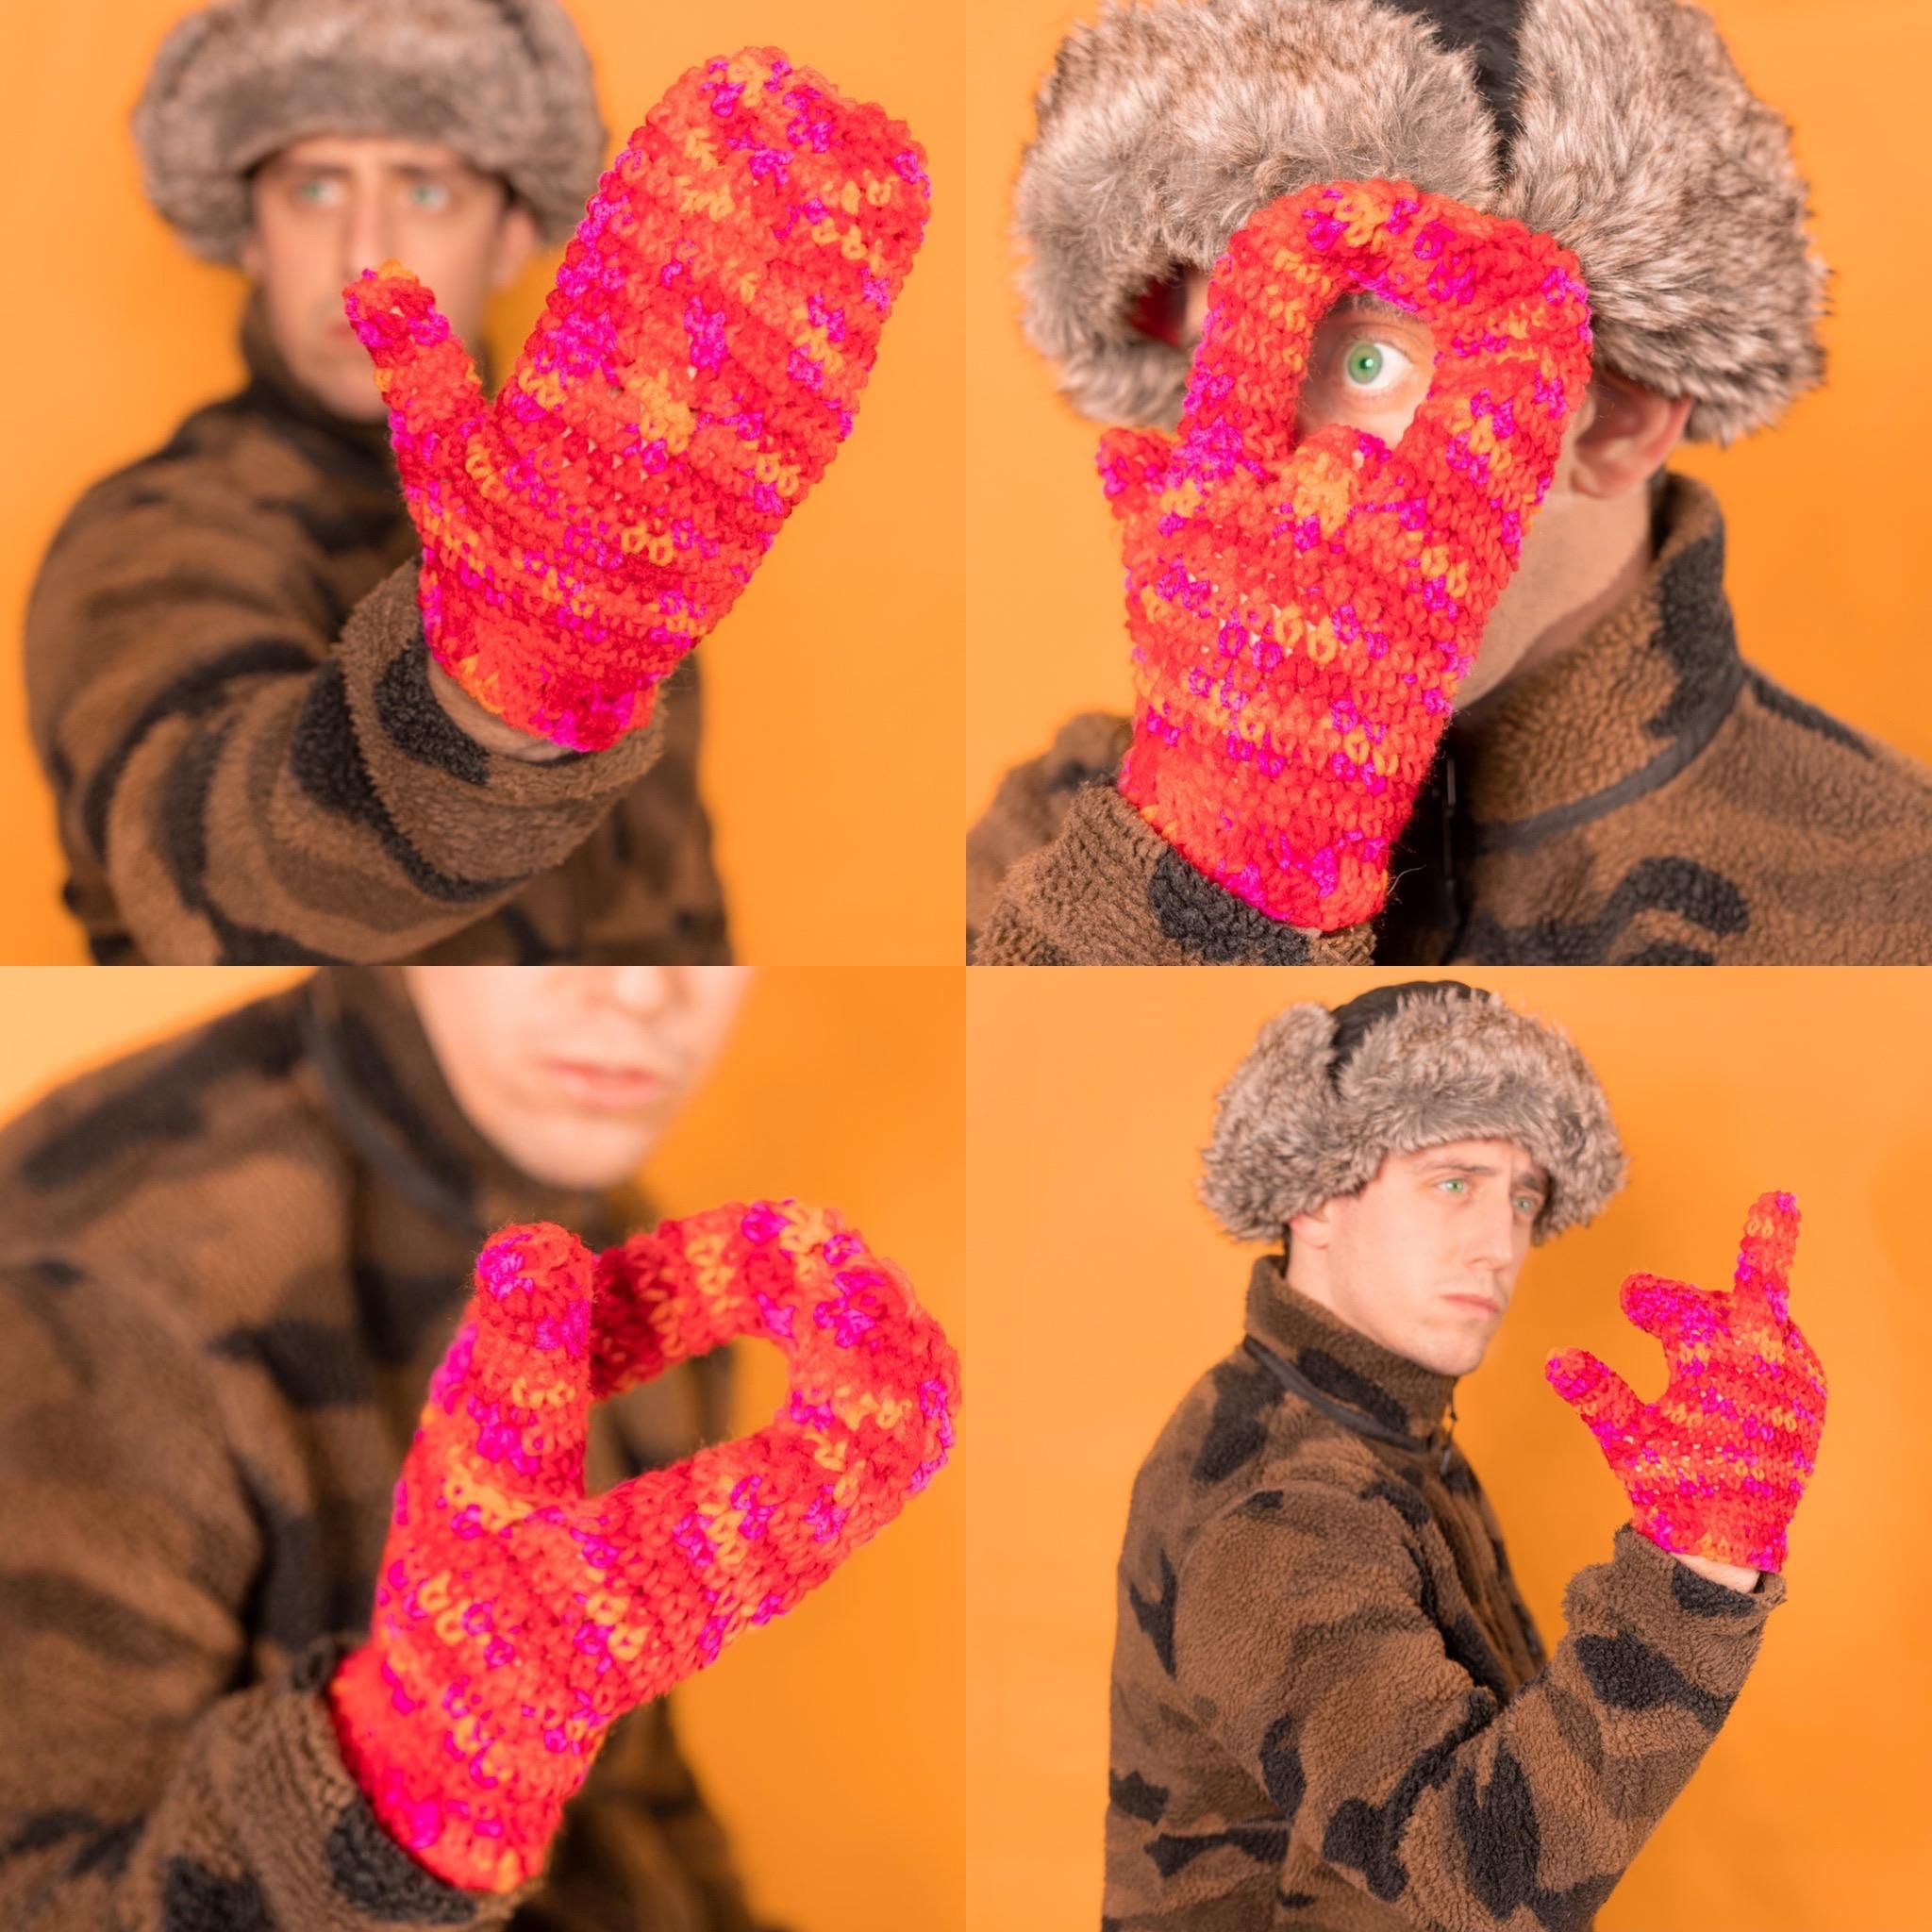 For fun I design fake product ideas, so I created a pair of mittens with a solo finger so you can still flip them off.